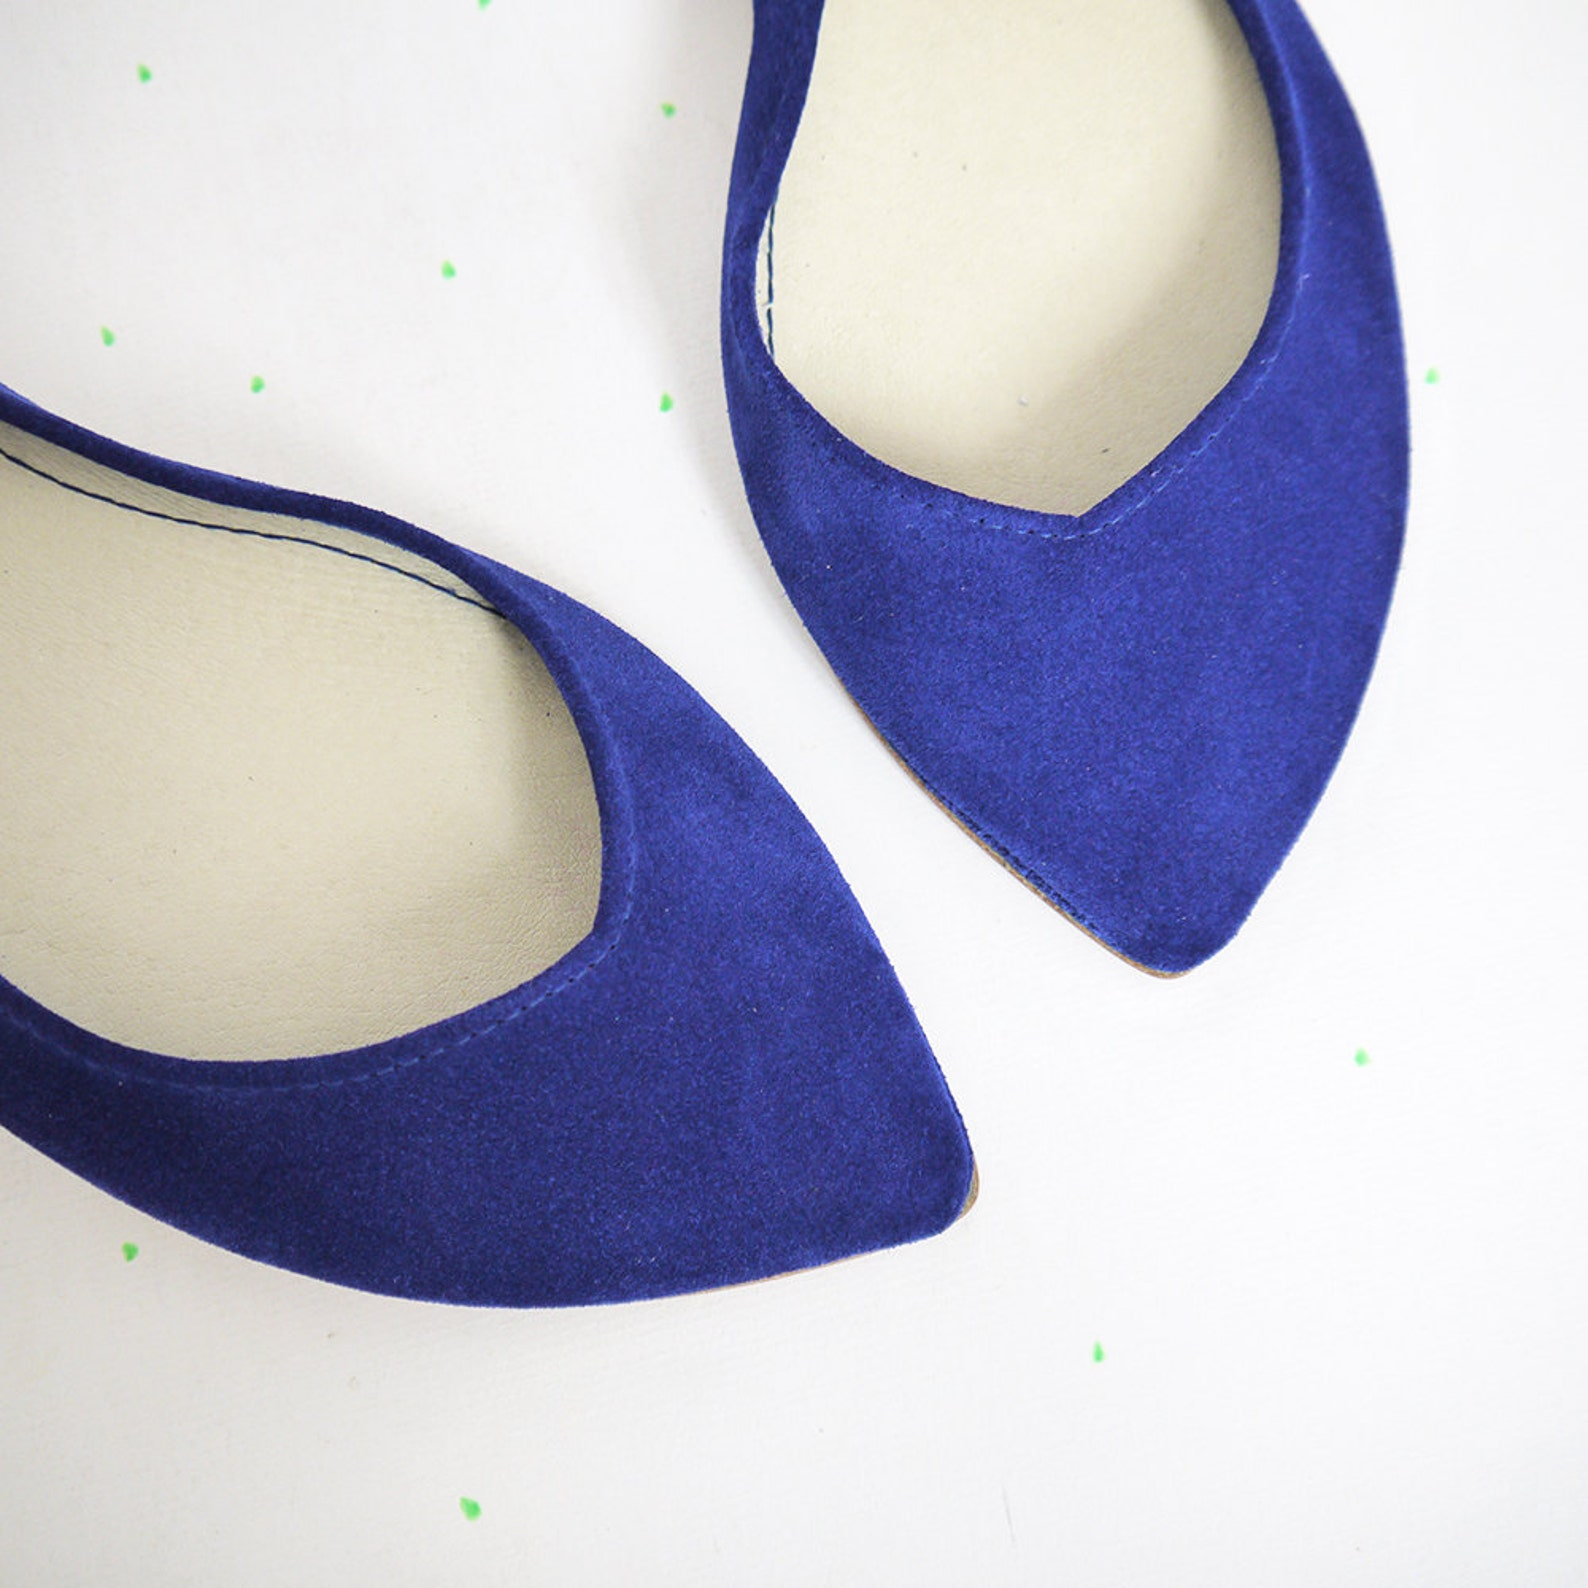 ballet flats shoes. pointy shoes. pointed flats. pointed ballerinas. bridal shoes. wedding shoe. royal blue ballet flats. cobalt